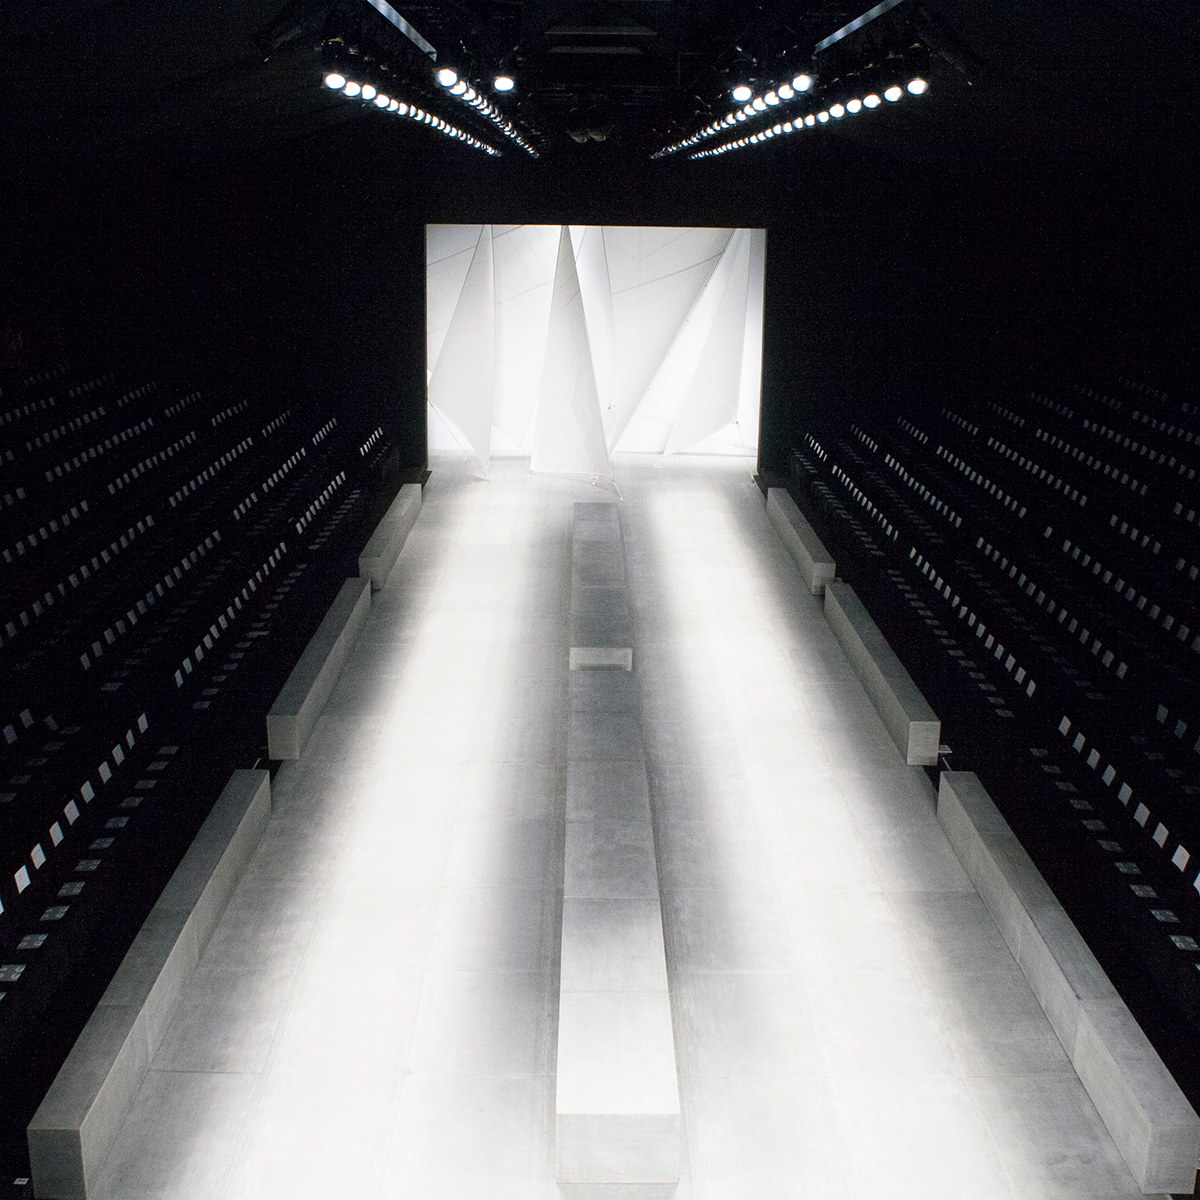 Immediacy in fashion for Runway stages